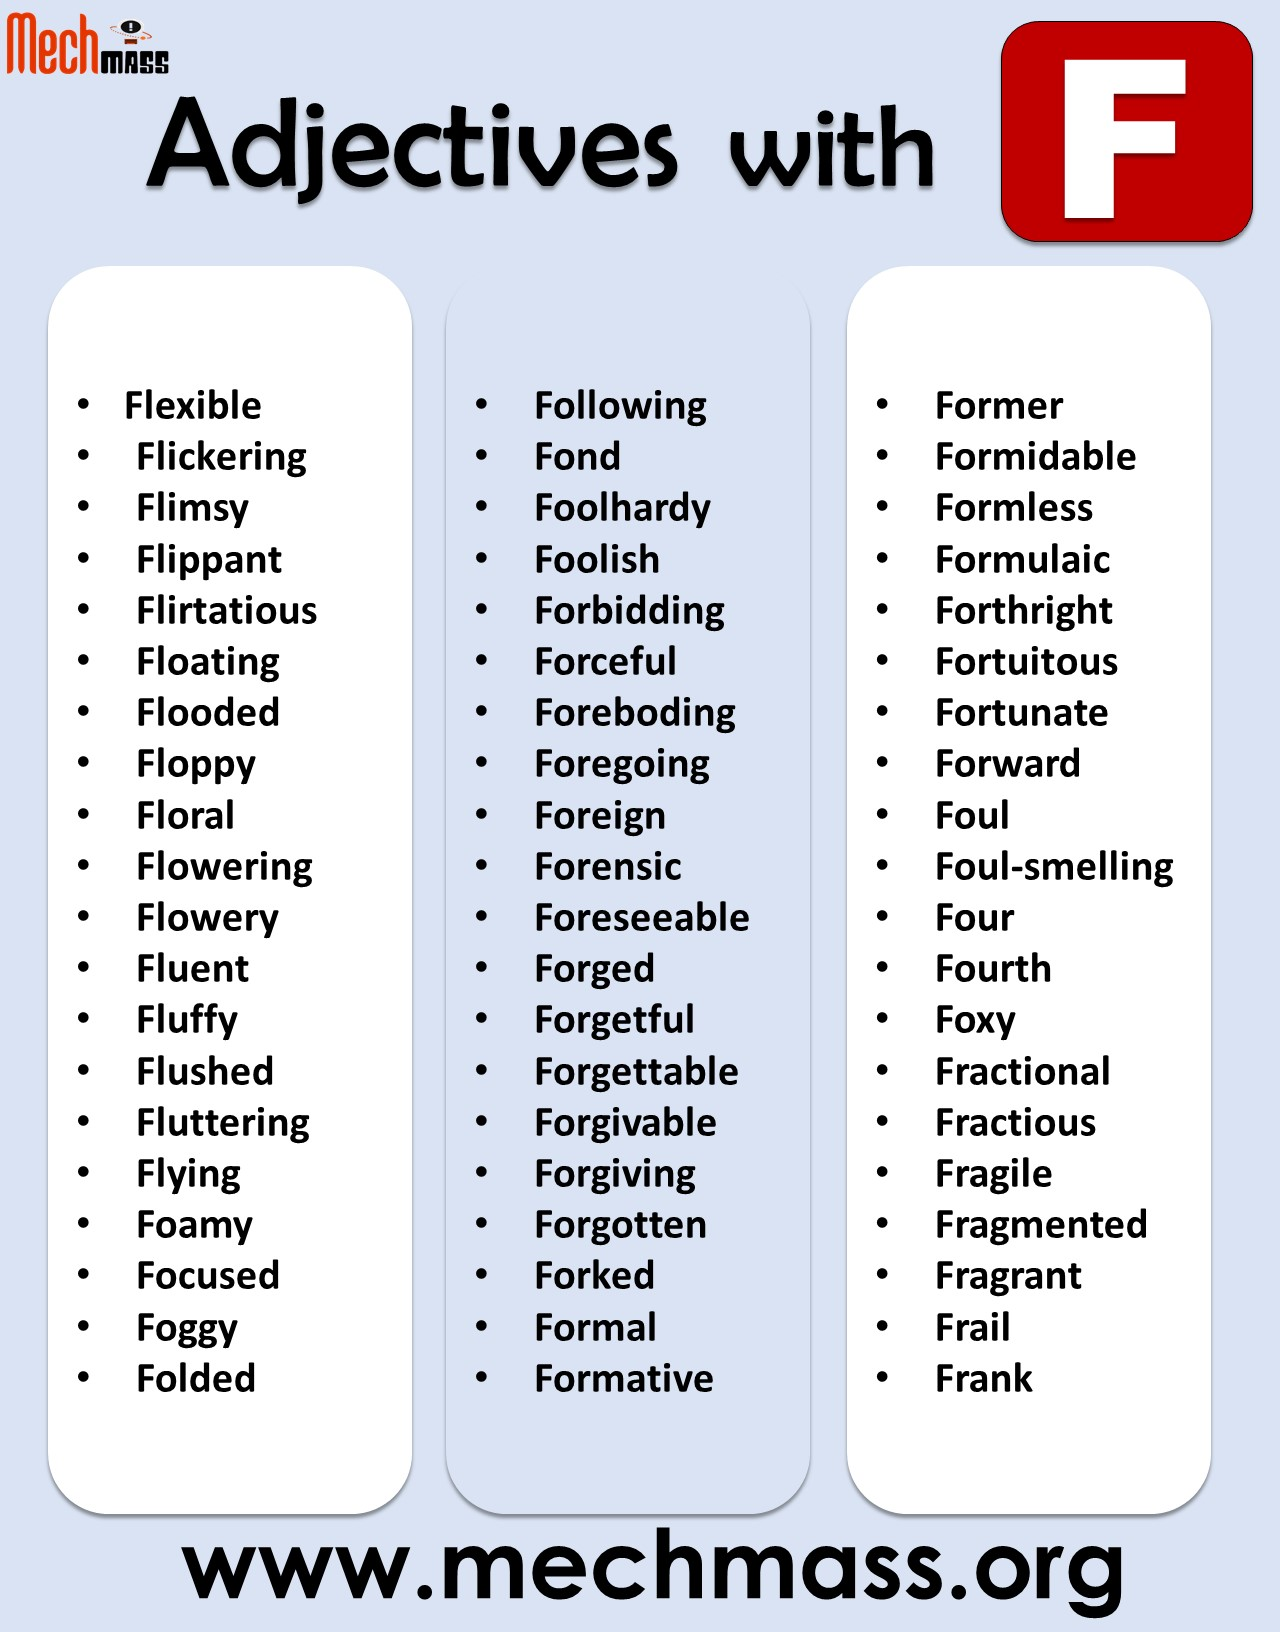 adjectives that start with f to describe a person positively